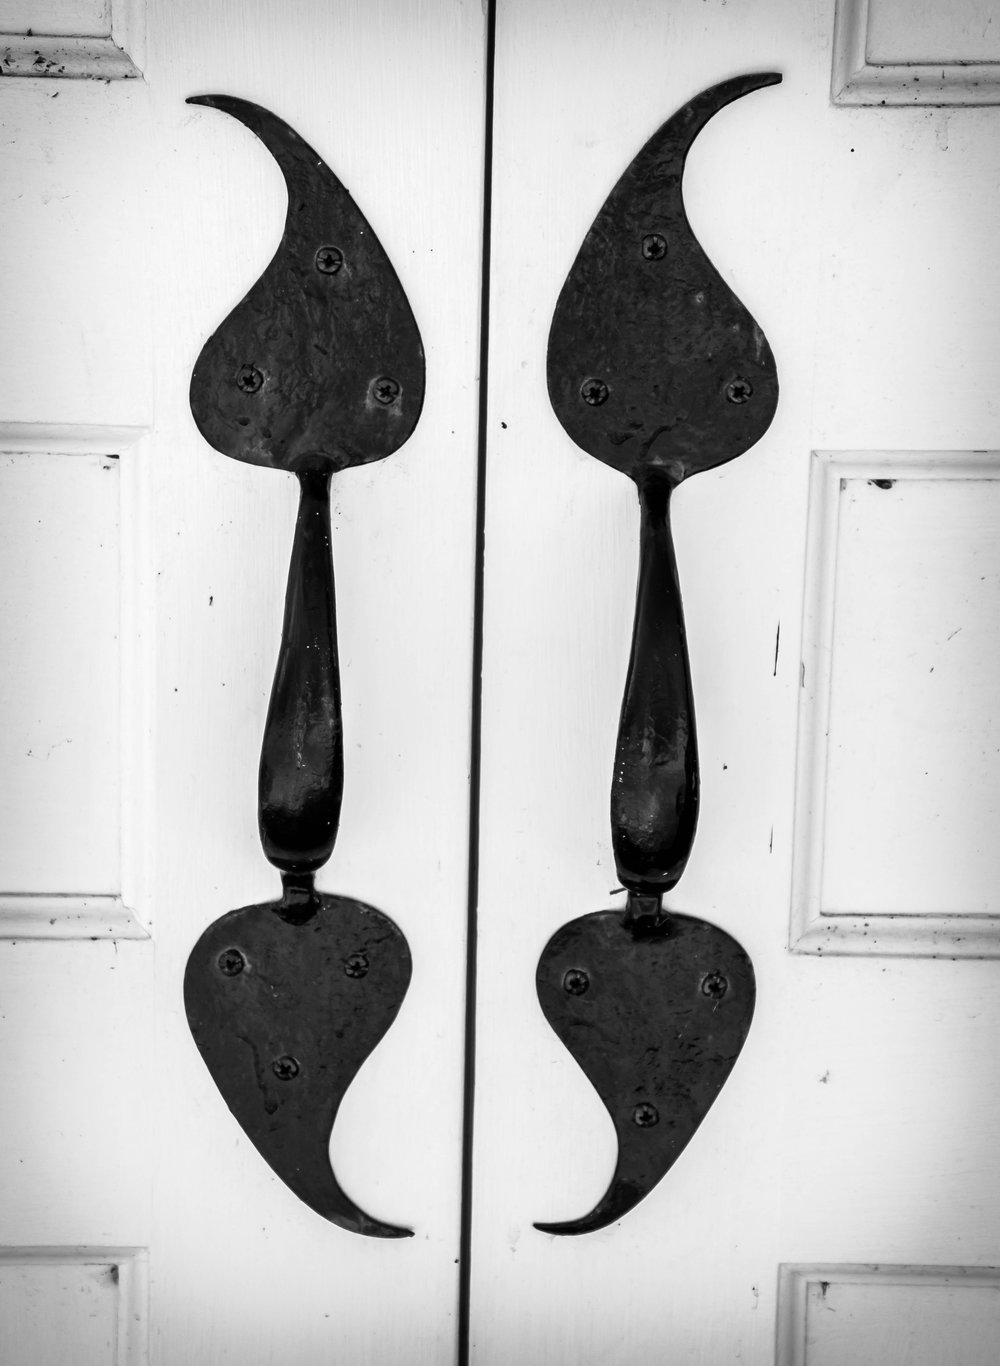 Take the time to notice patterns and designs like these door handles on an old church in Weston, MA. ISO 200 f/6.3 1/320